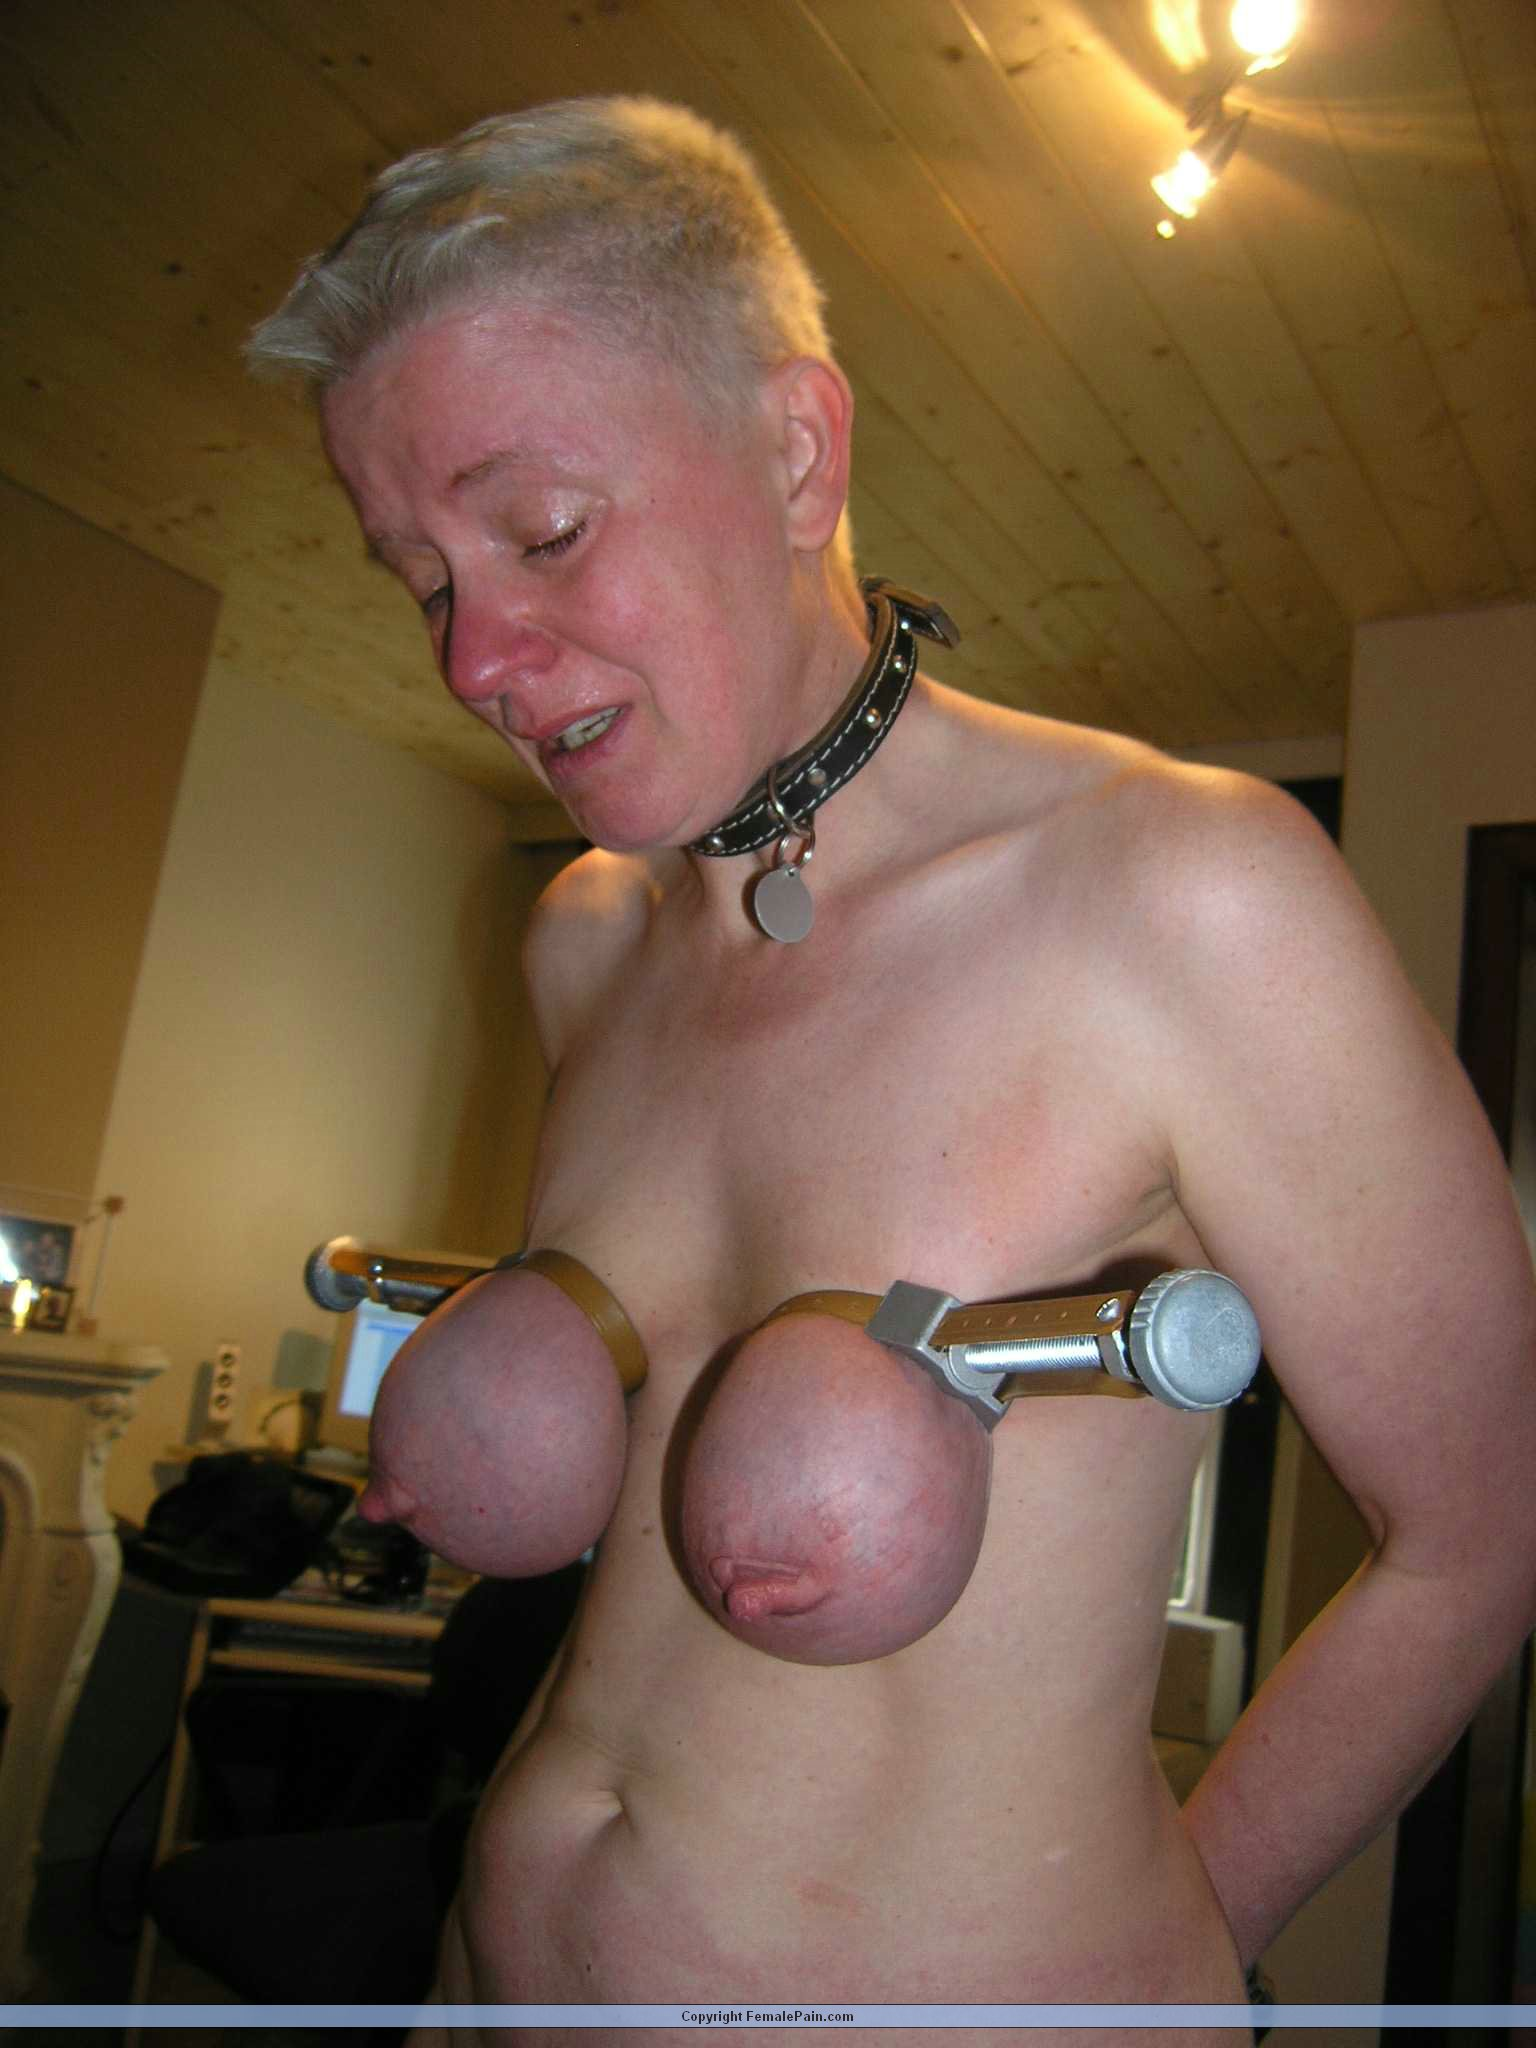 Submissive woman videos